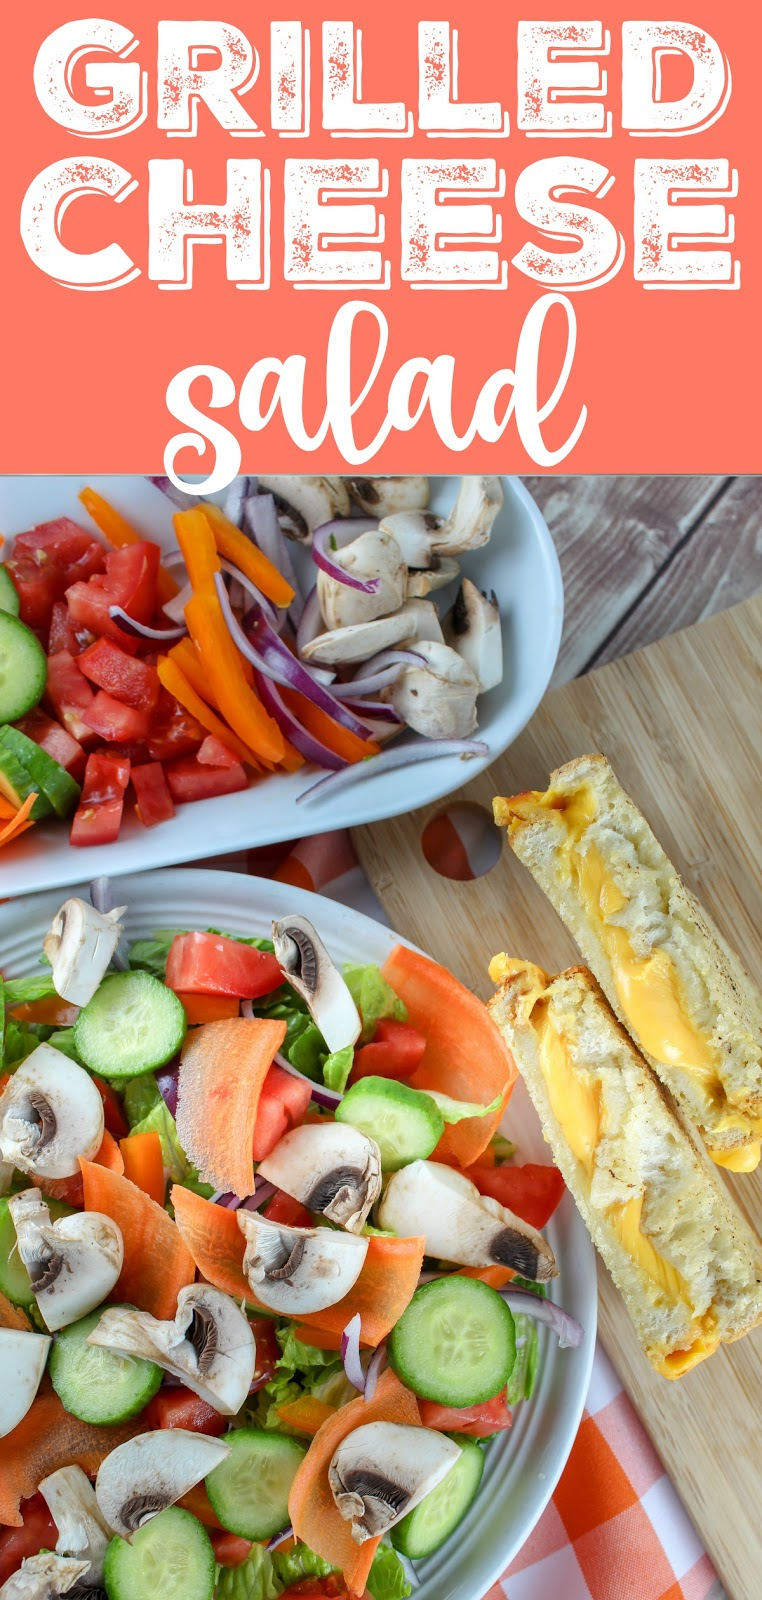 I have loved the Grilled Cheese Salad at Tom + Chee for years and I finally decided to make it myself. It's so simple and delicious! Tom + Chee was seen on Shark Tank a few years back and has become a big chain - and this is one of their best ideas! This takes croutons to the NEXT level! #grilledcheese #salad